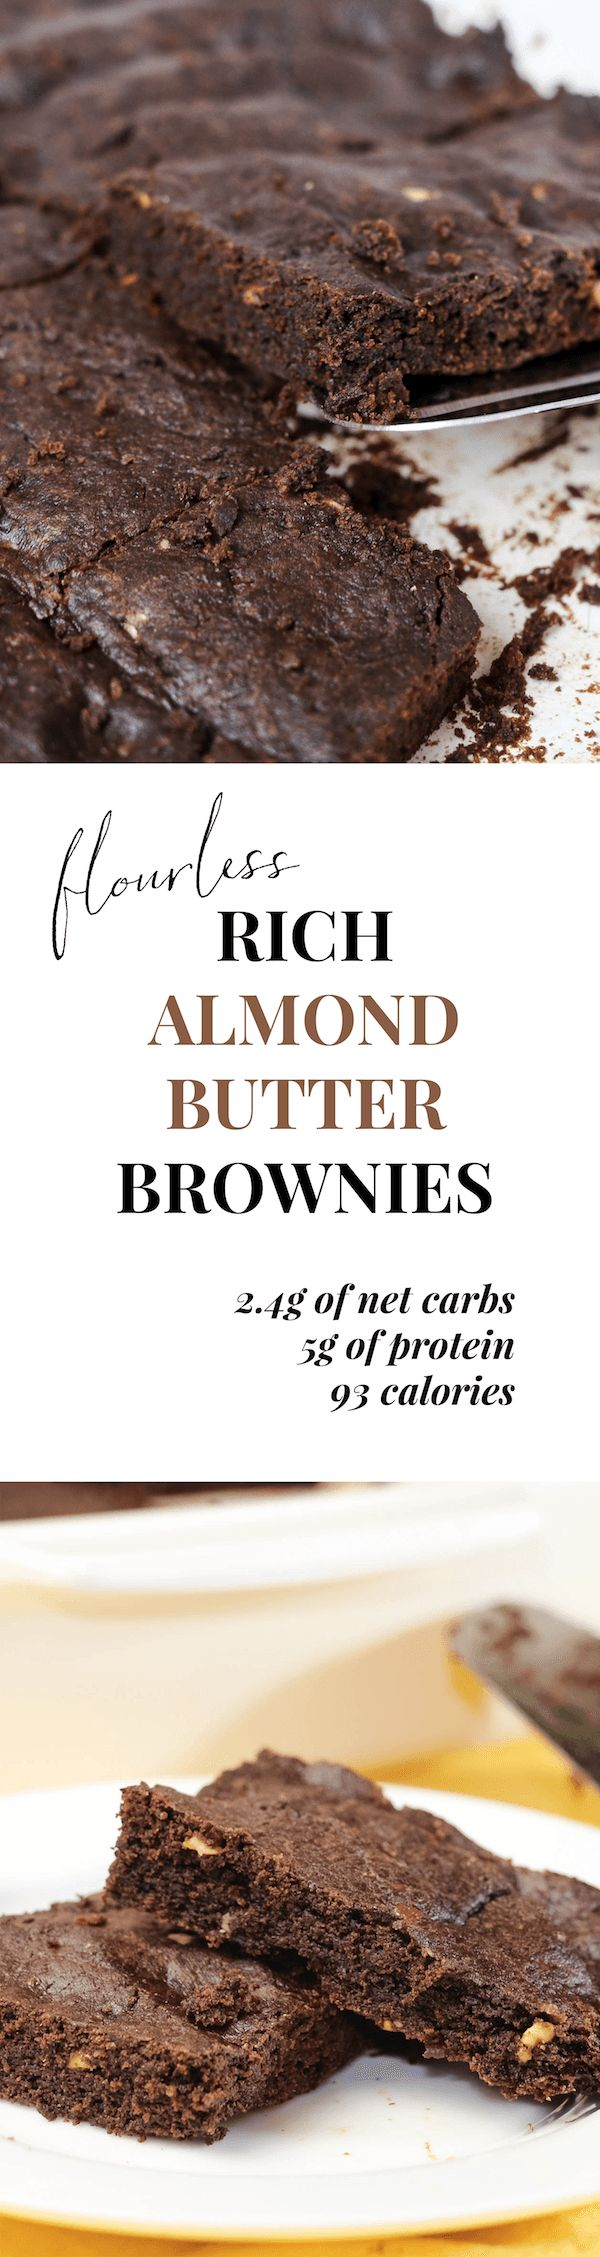 Using almond butter instead of flour makes these brownies incredibly rich. No one will suspect they're only 2.4g carbs and 91 calories each!